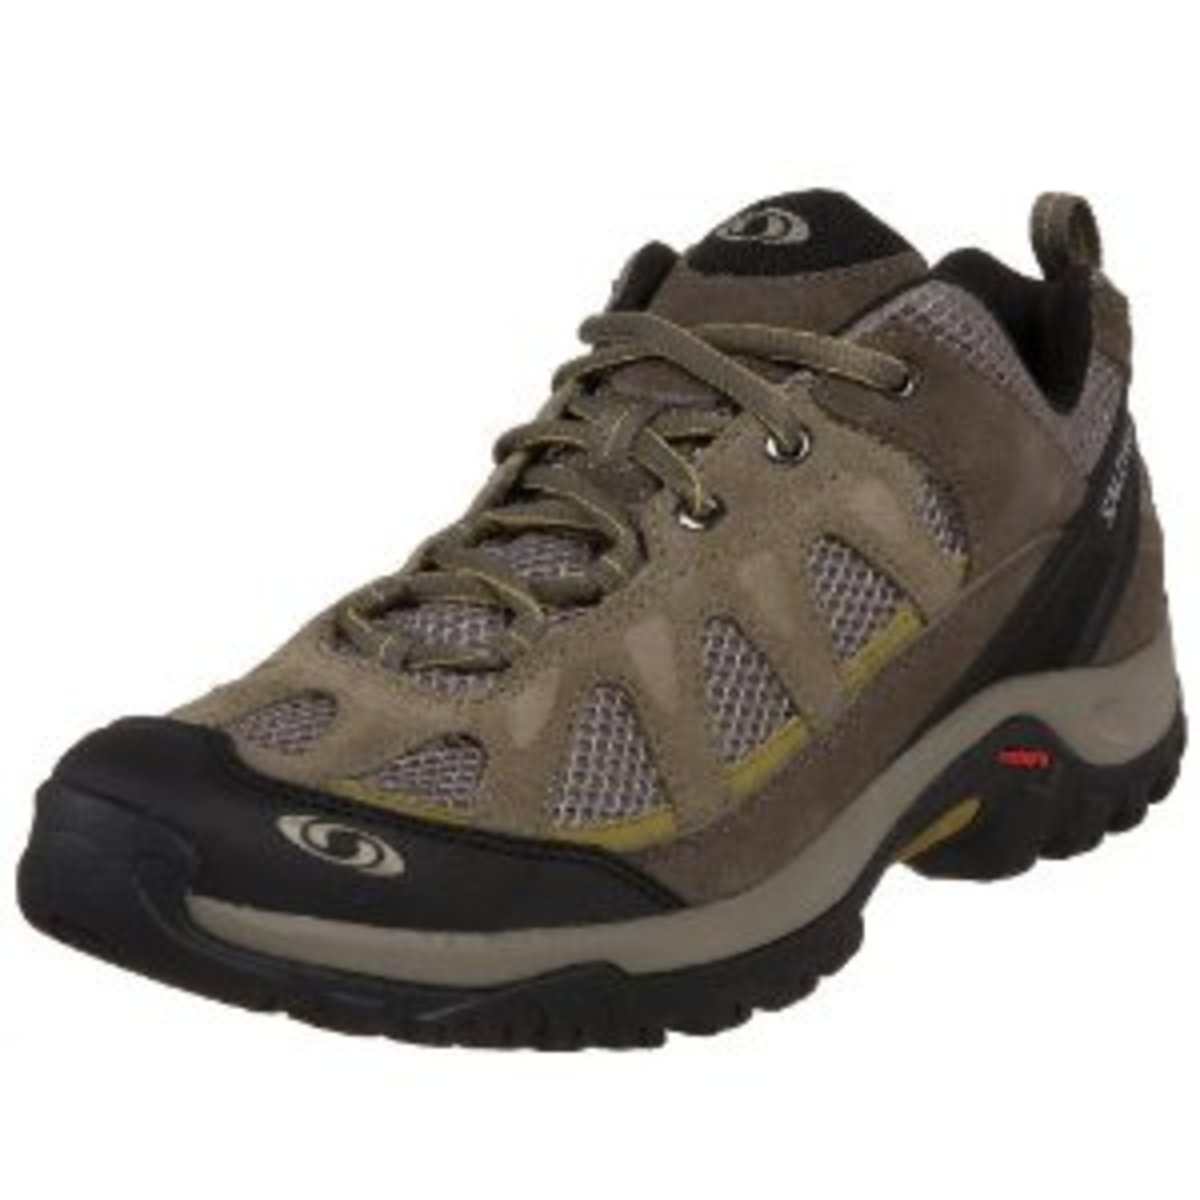 Salomon Men's Exit Aero Hiking Shoe